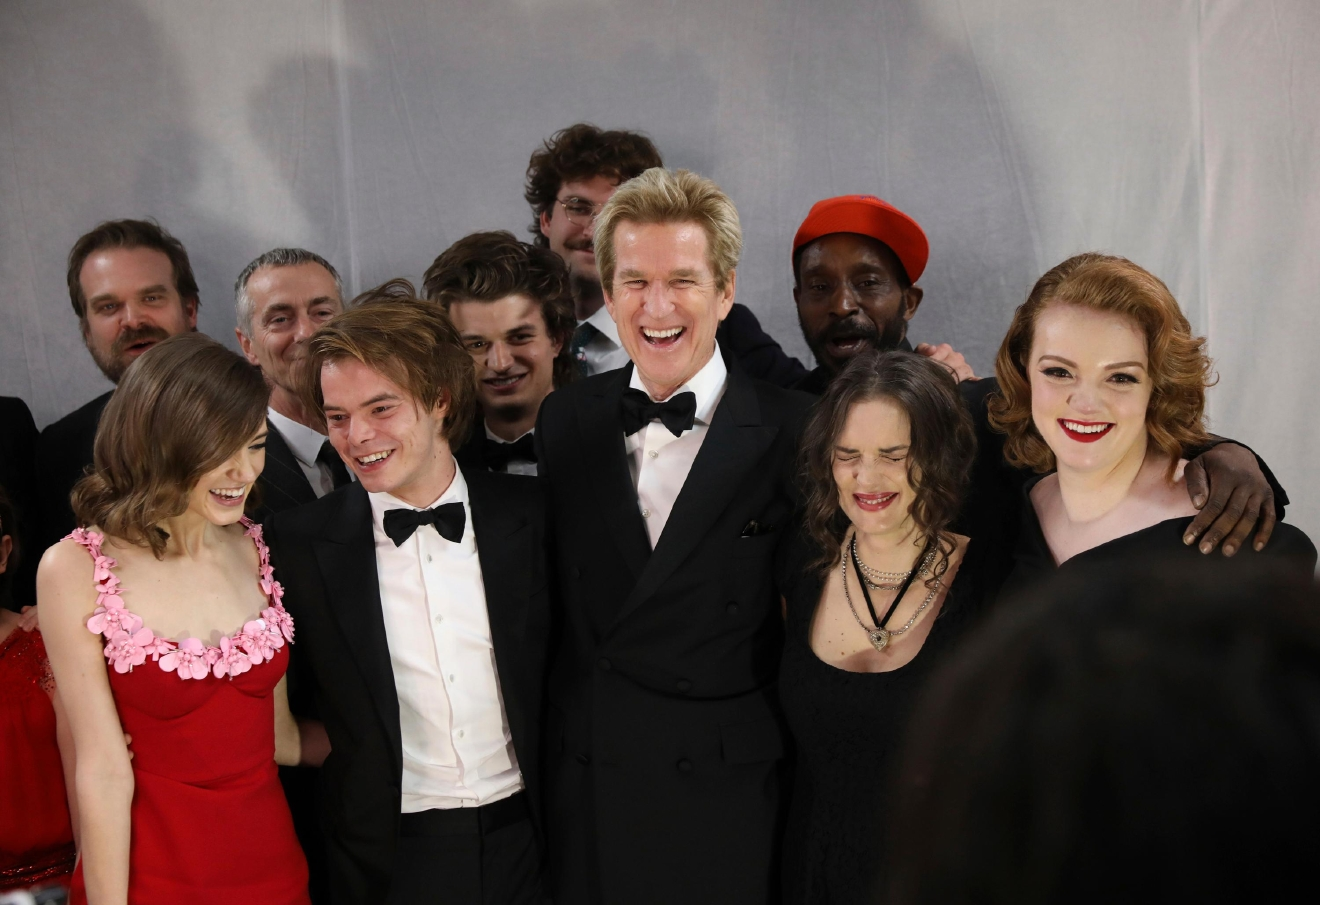 "Natalia Dyer, from left, Charlie Heaton, Joe Keery, Matthew Modine, Rob Morgan, Winona Ryder, and Shannon Purser appear backstage after accepting the award for outstanding performance by an ensemble in a drama series for ""Stranger Things"" at the 23rd annual Screen Actors Guild Awards at the Shrine Auditorium & Expo Hall on Sunday, Jan. 29, 2017, in Los Angeles. (Photo by Matt Sayles/Invision/AP)"